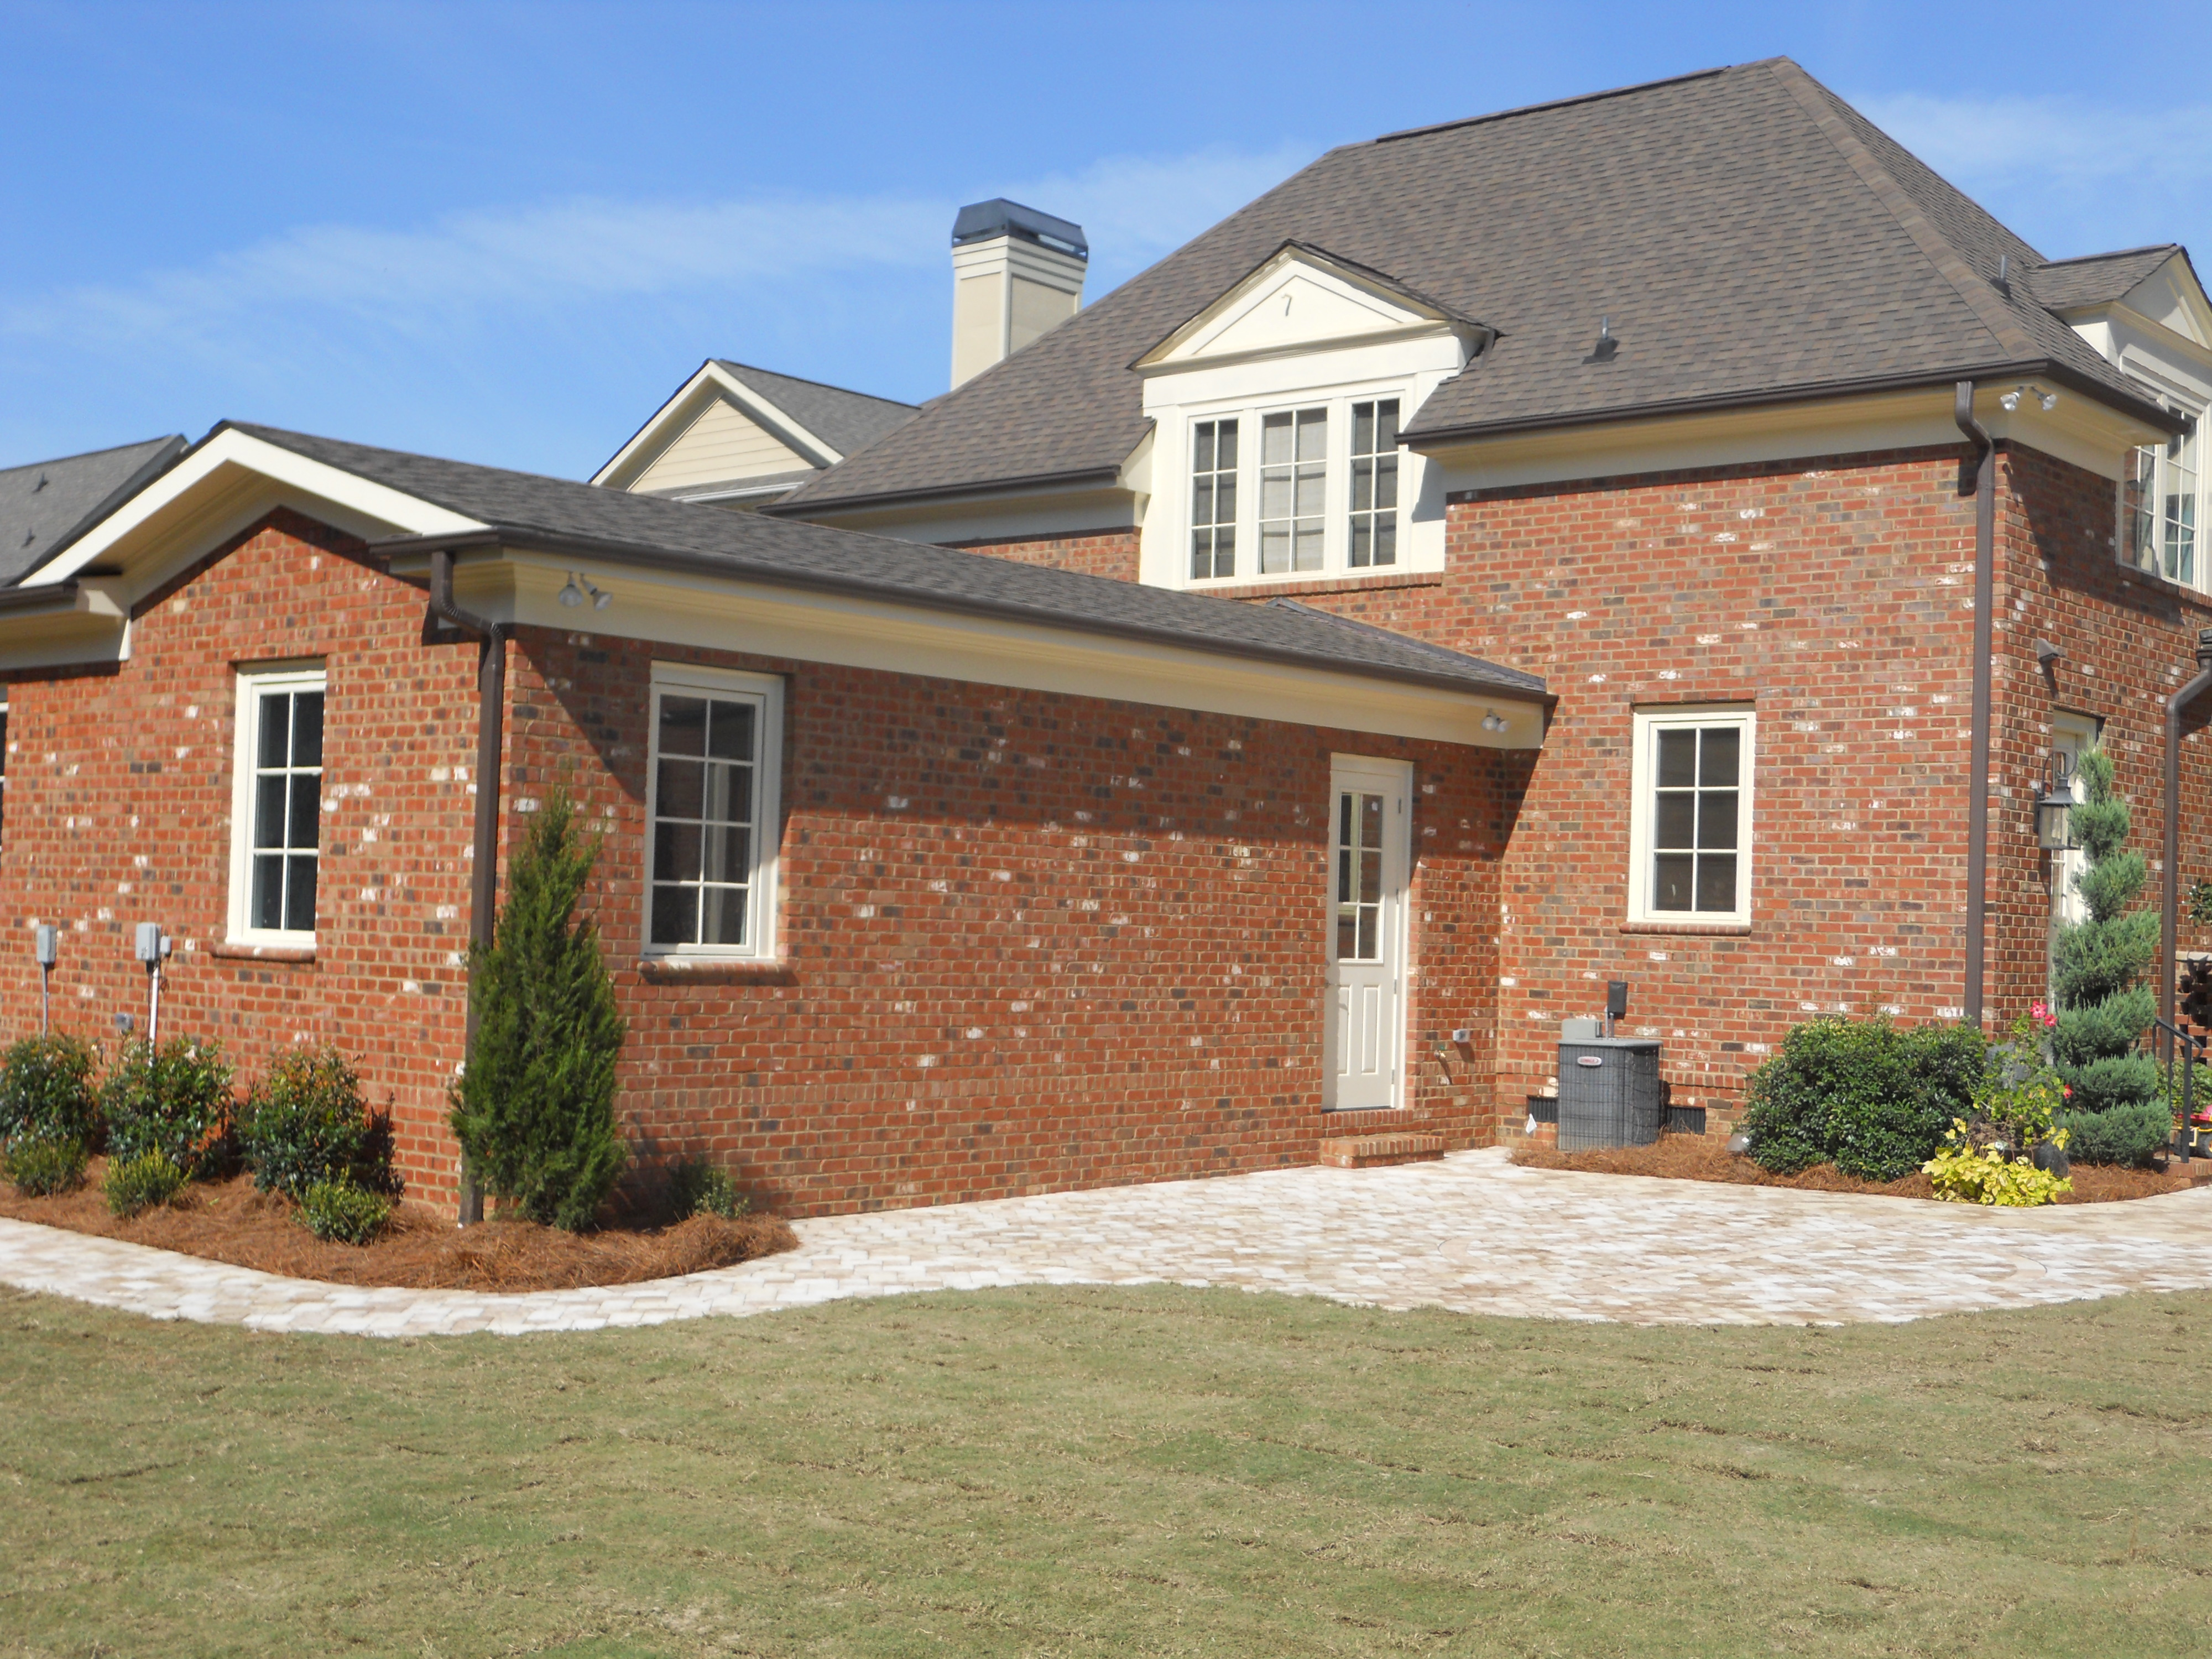 Garage addition in charlotte nc henderson building group for Custom house charlotte